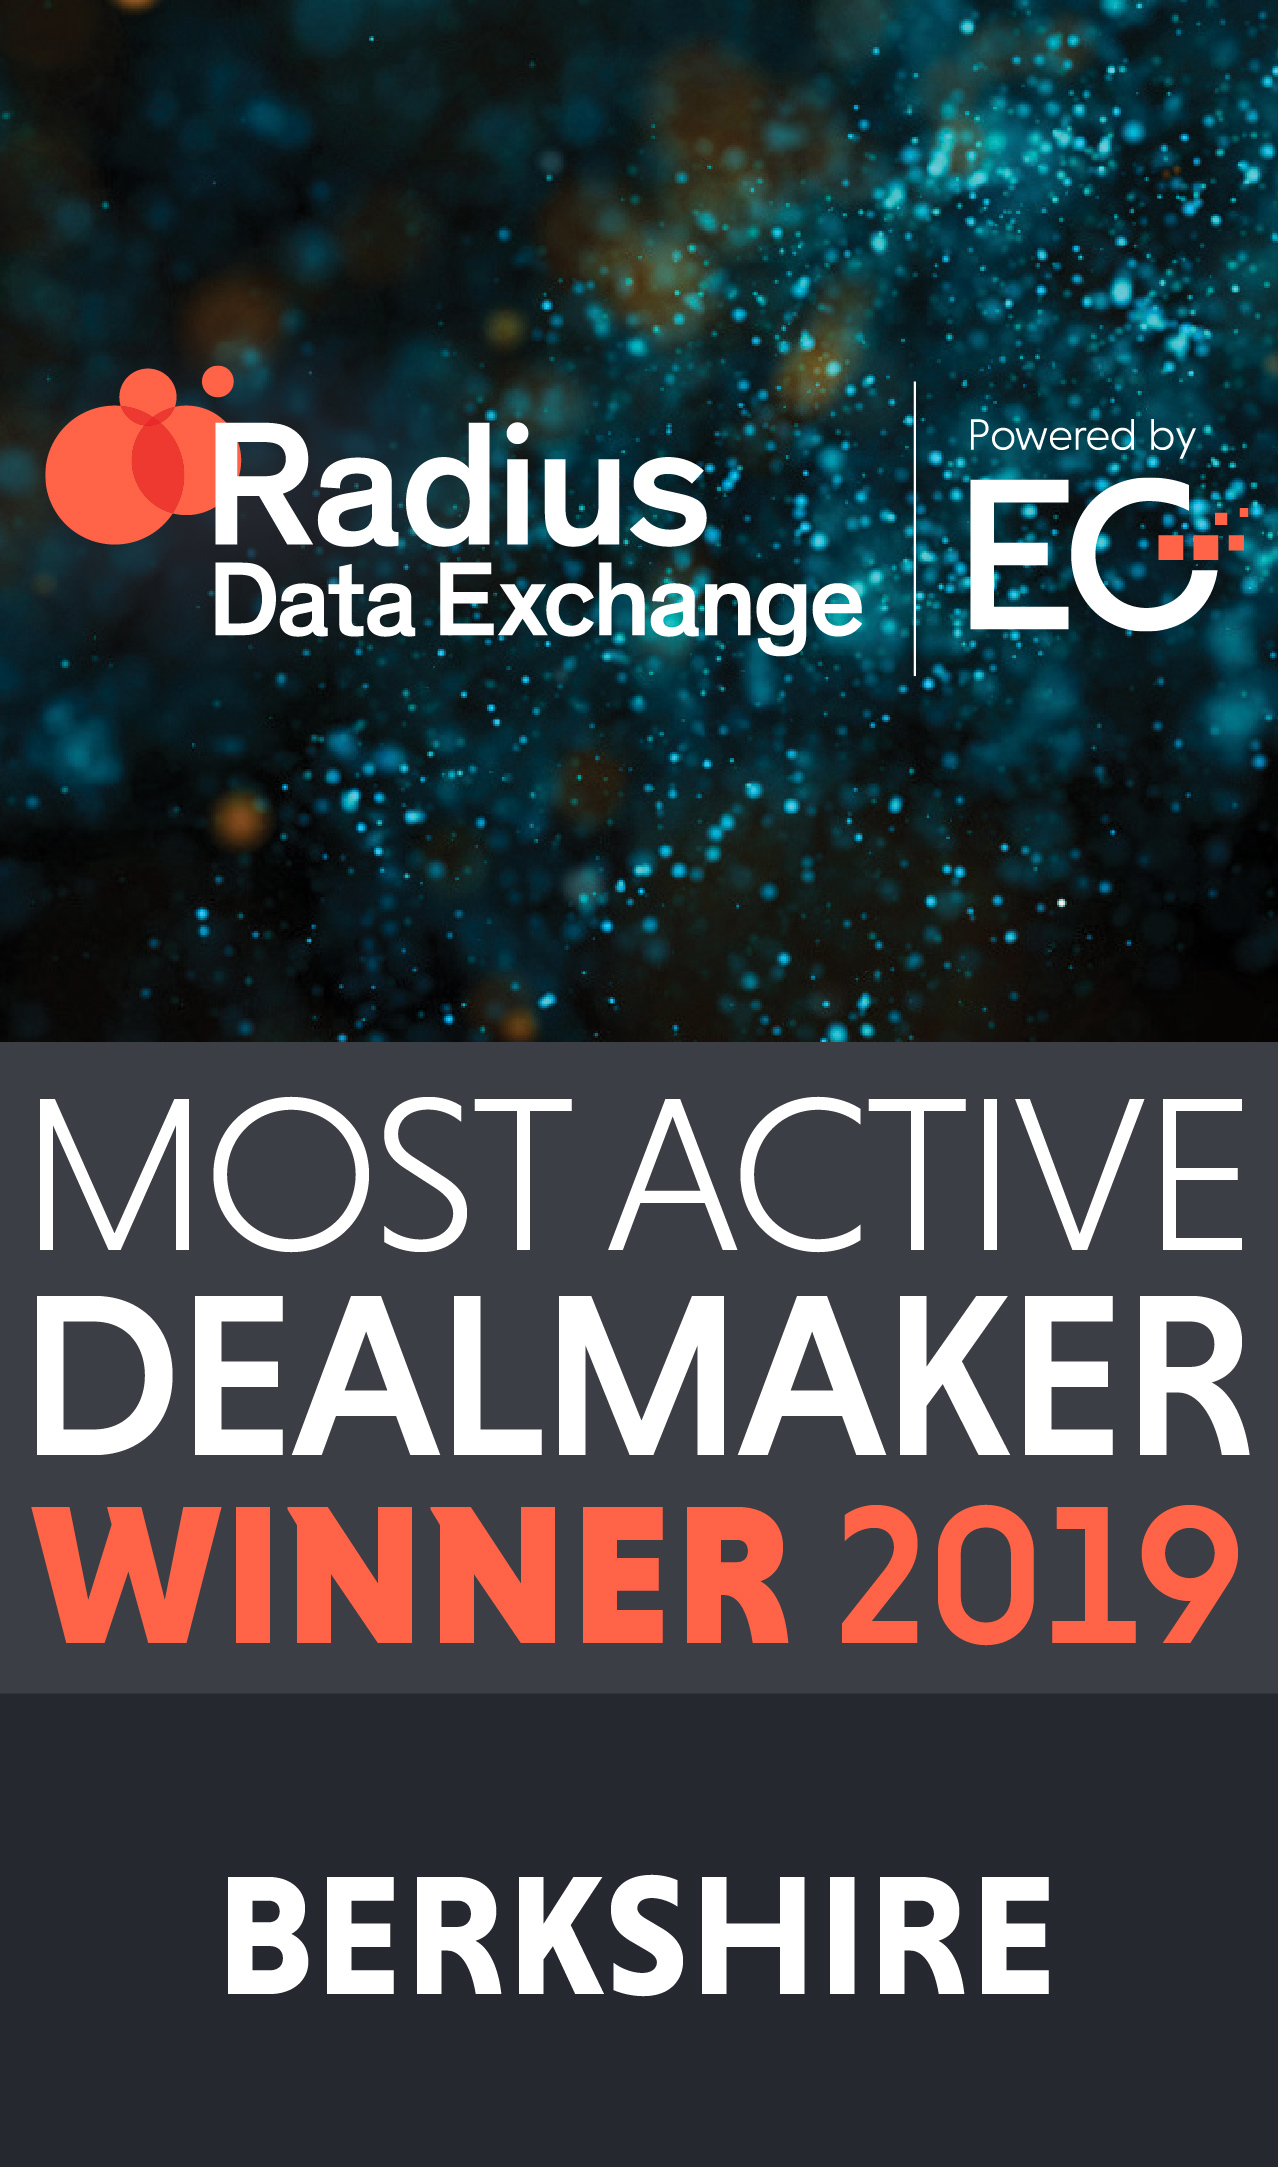 Radius Most Active Dealmaker winner 2019